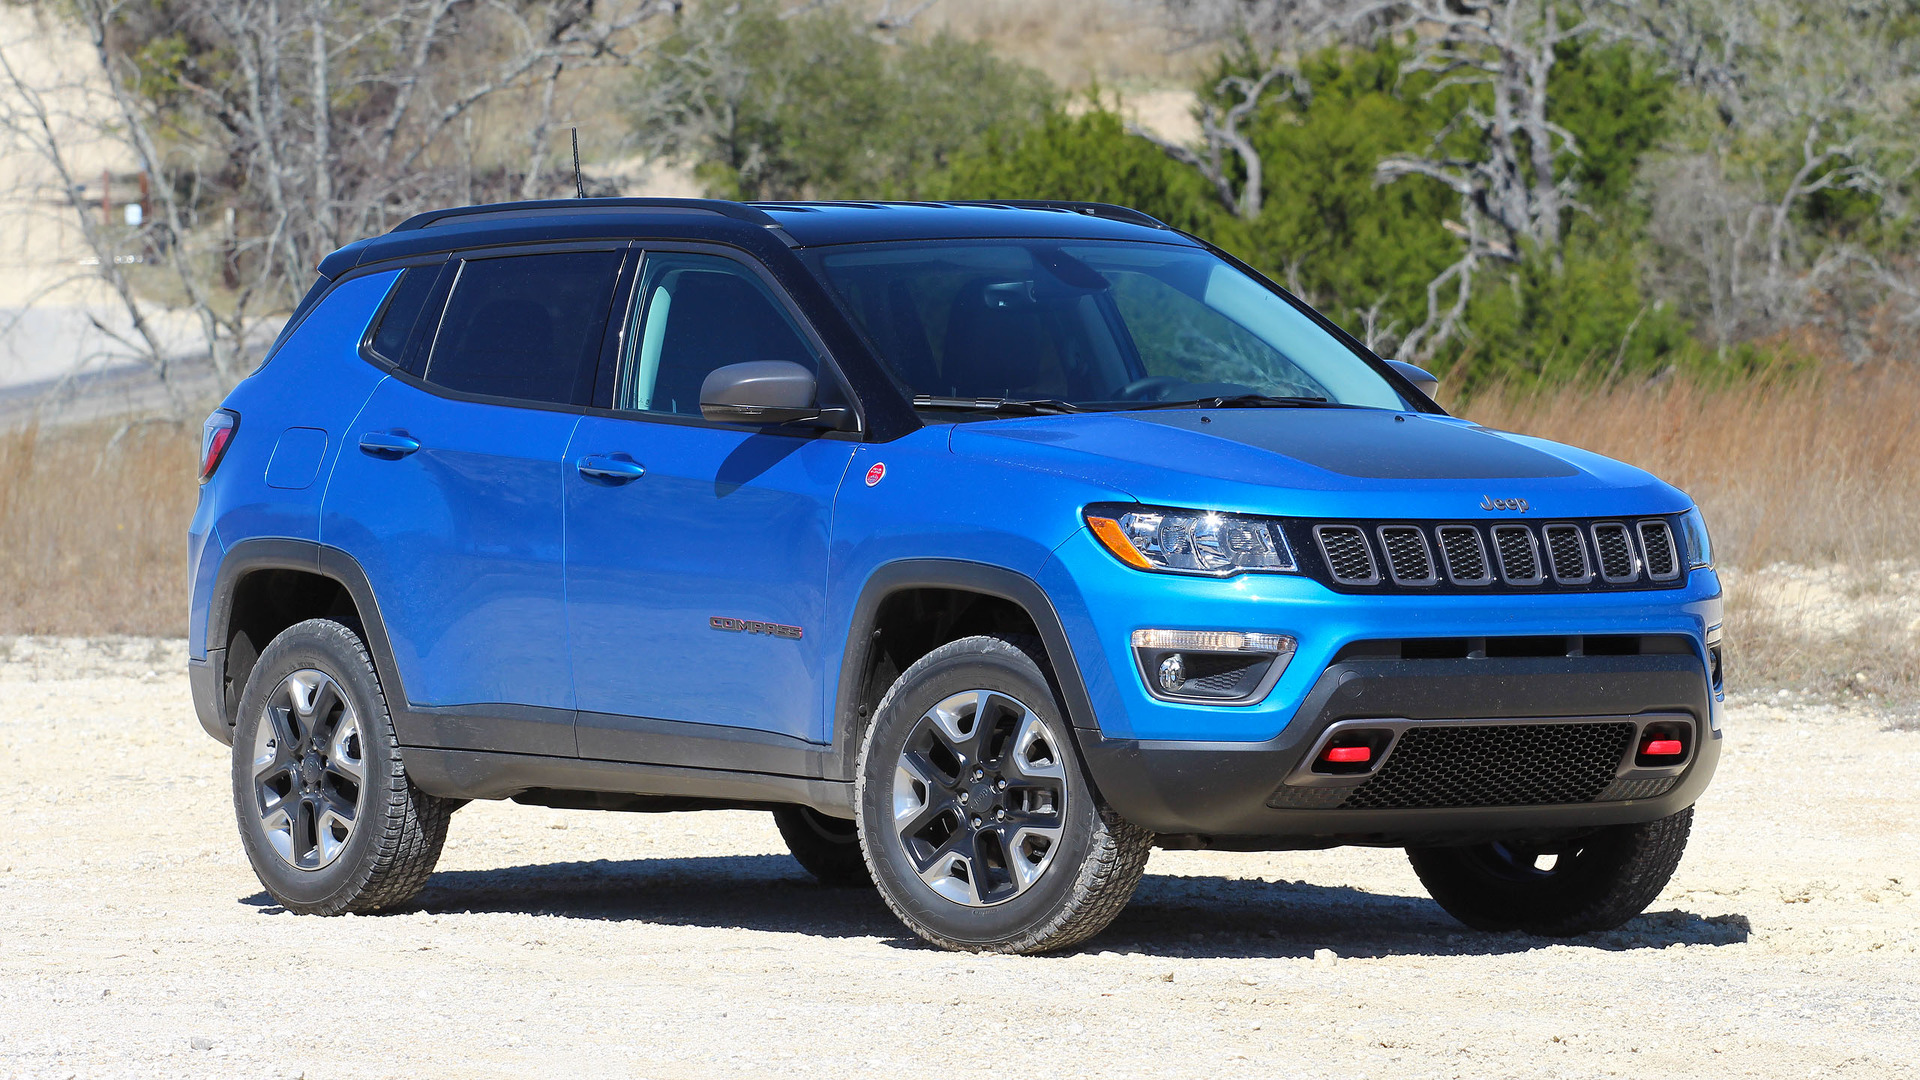 Best Year For Jeep Wrangler >> 2017 Jeep Compass First Drive: All the right stuff